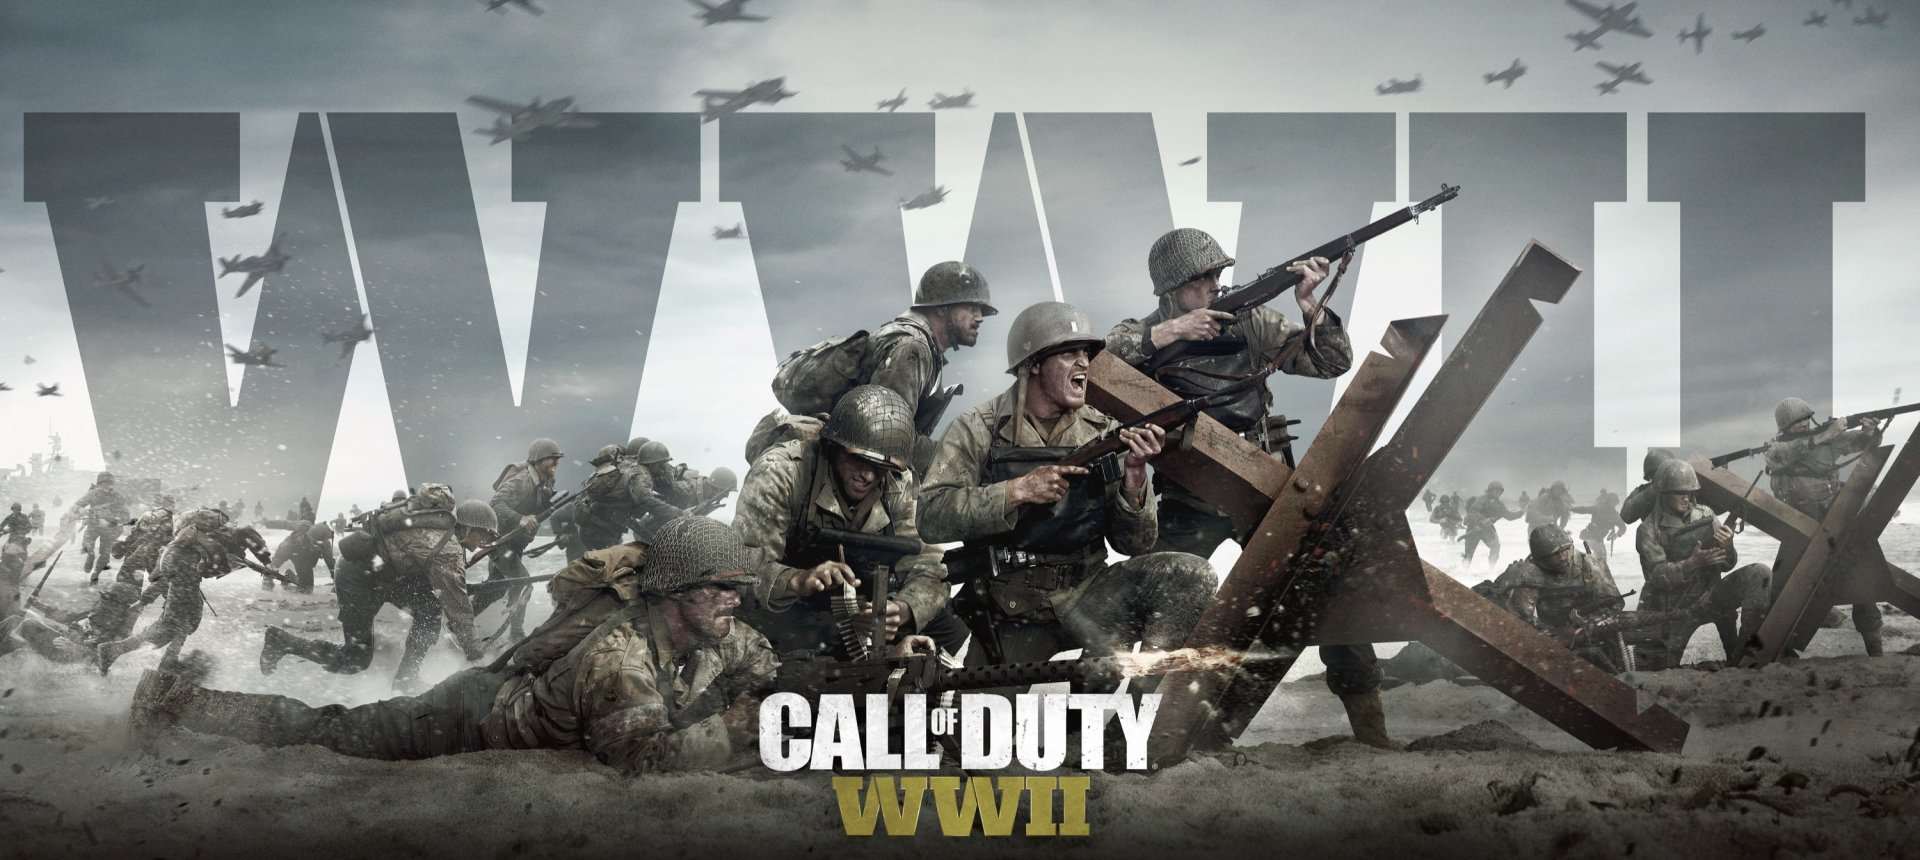 27 Call Of Duty Wwii Hd Wallpapers Background Images